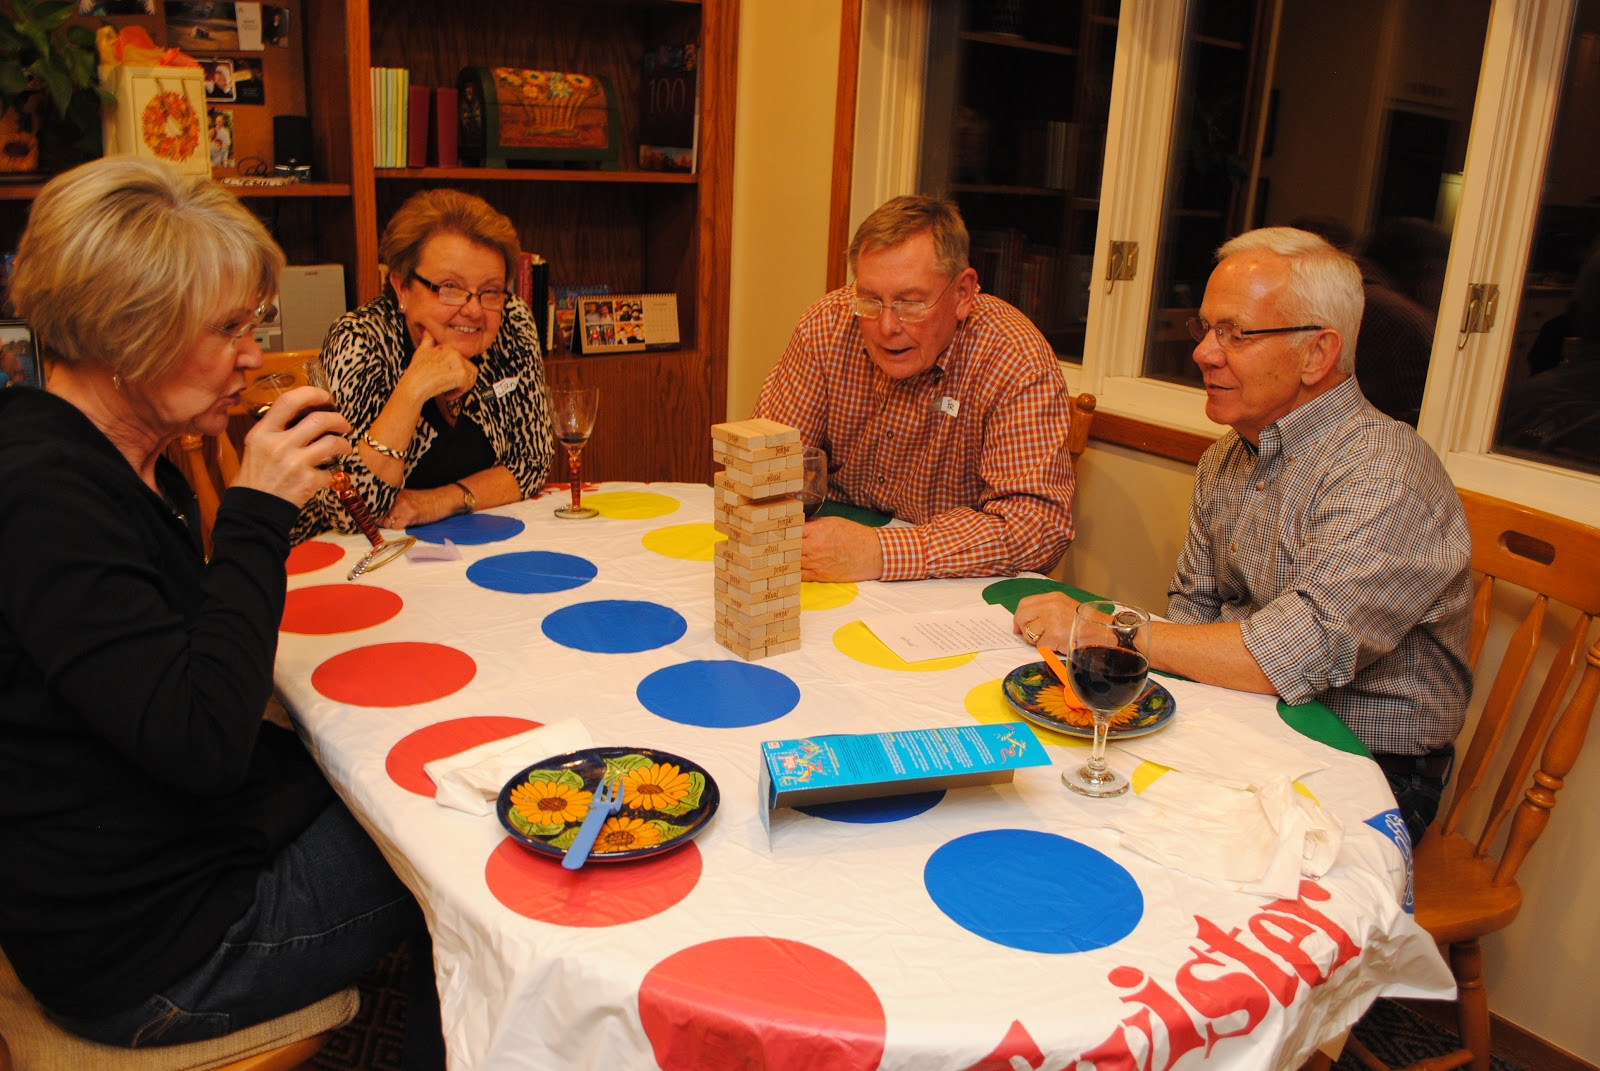 Game Night Glass Tables: The Boatwright Family: Wine Club Game Night